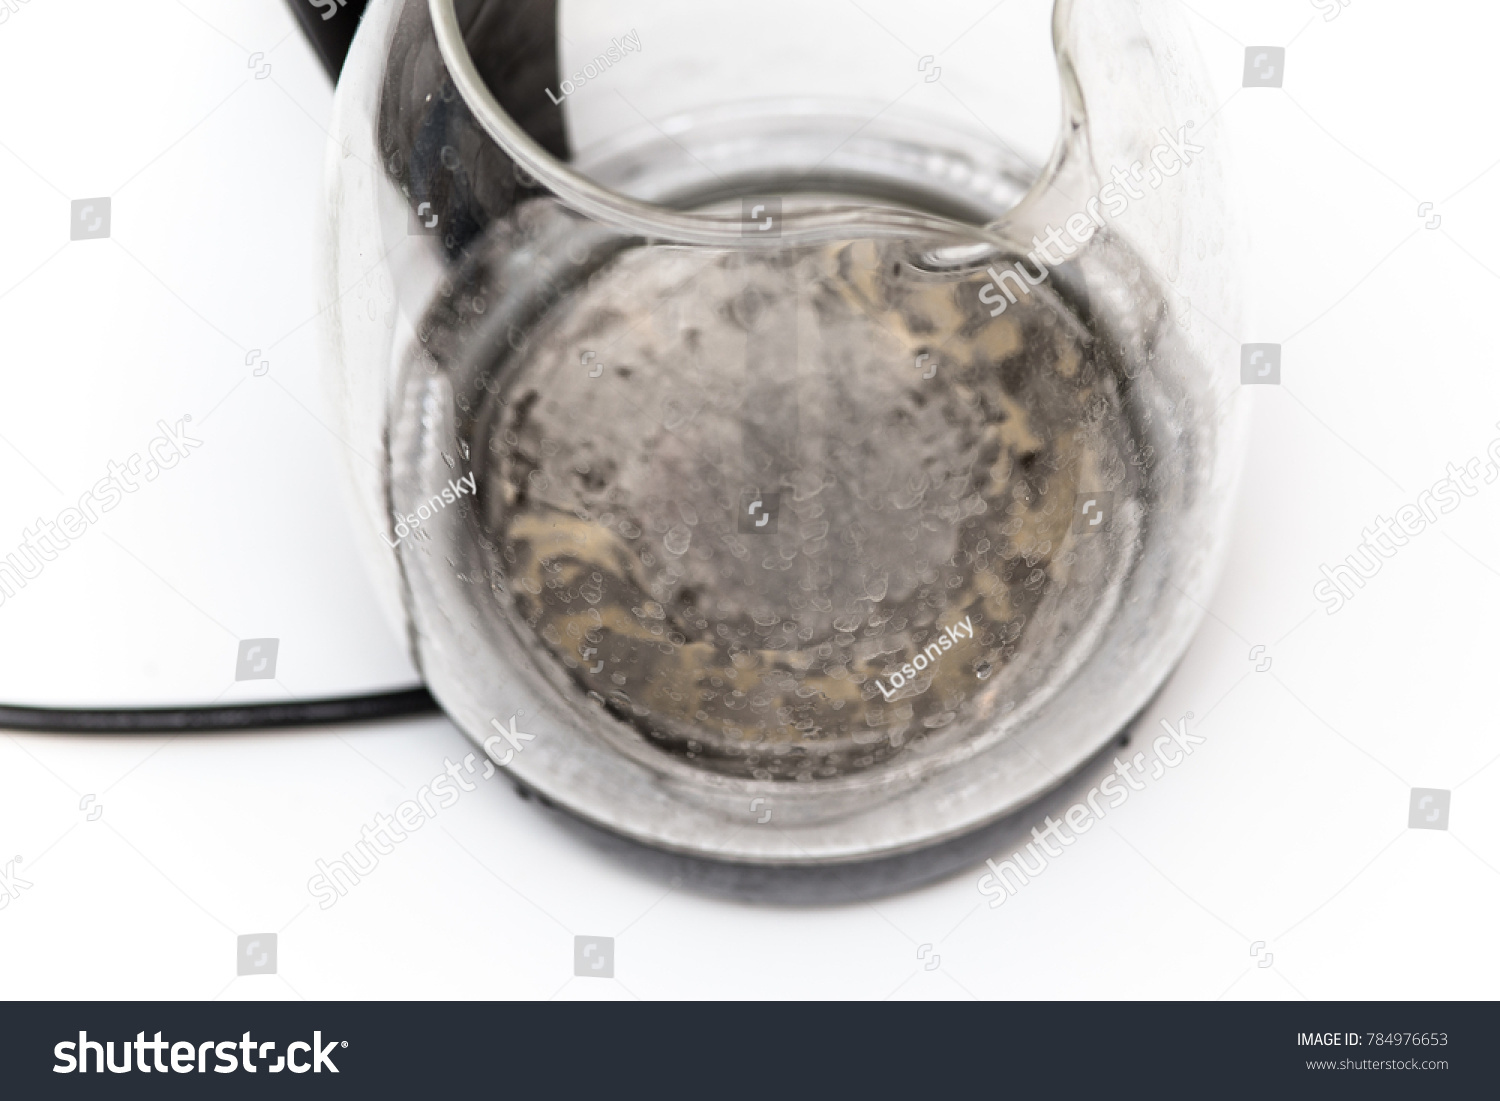 Hard Water Kettle Limescale Kitchen Stock Photo (Edit Now) 784976653 ...